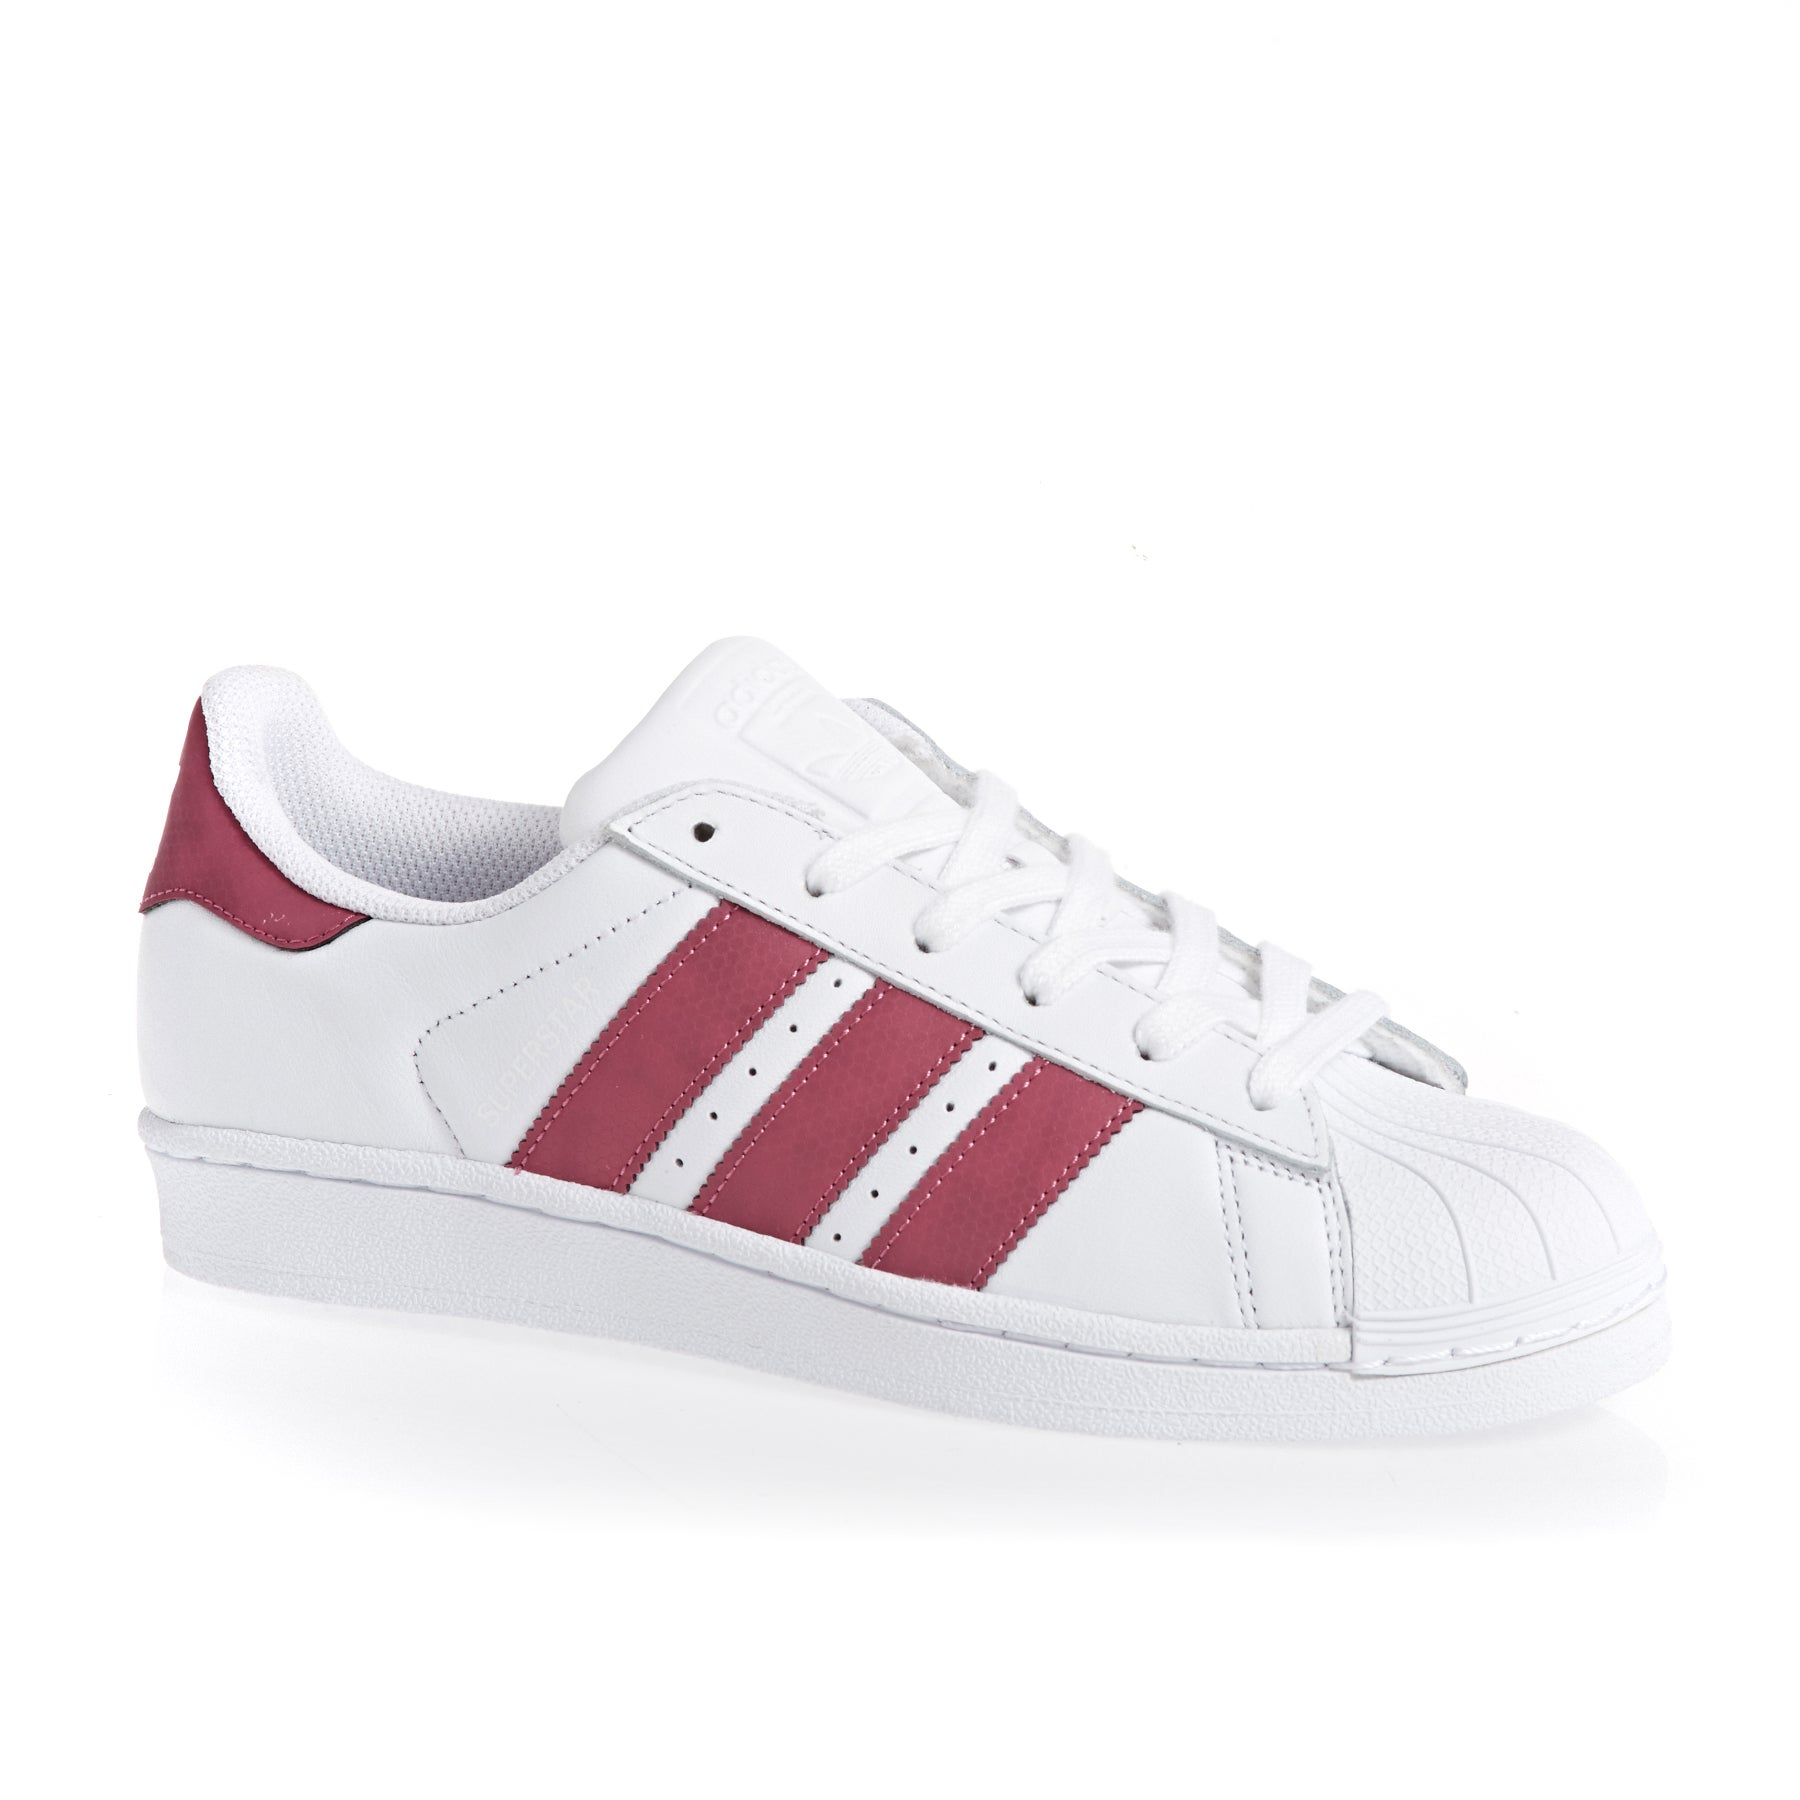 Chaussures Adidas Originals Superstar - White Burgundy